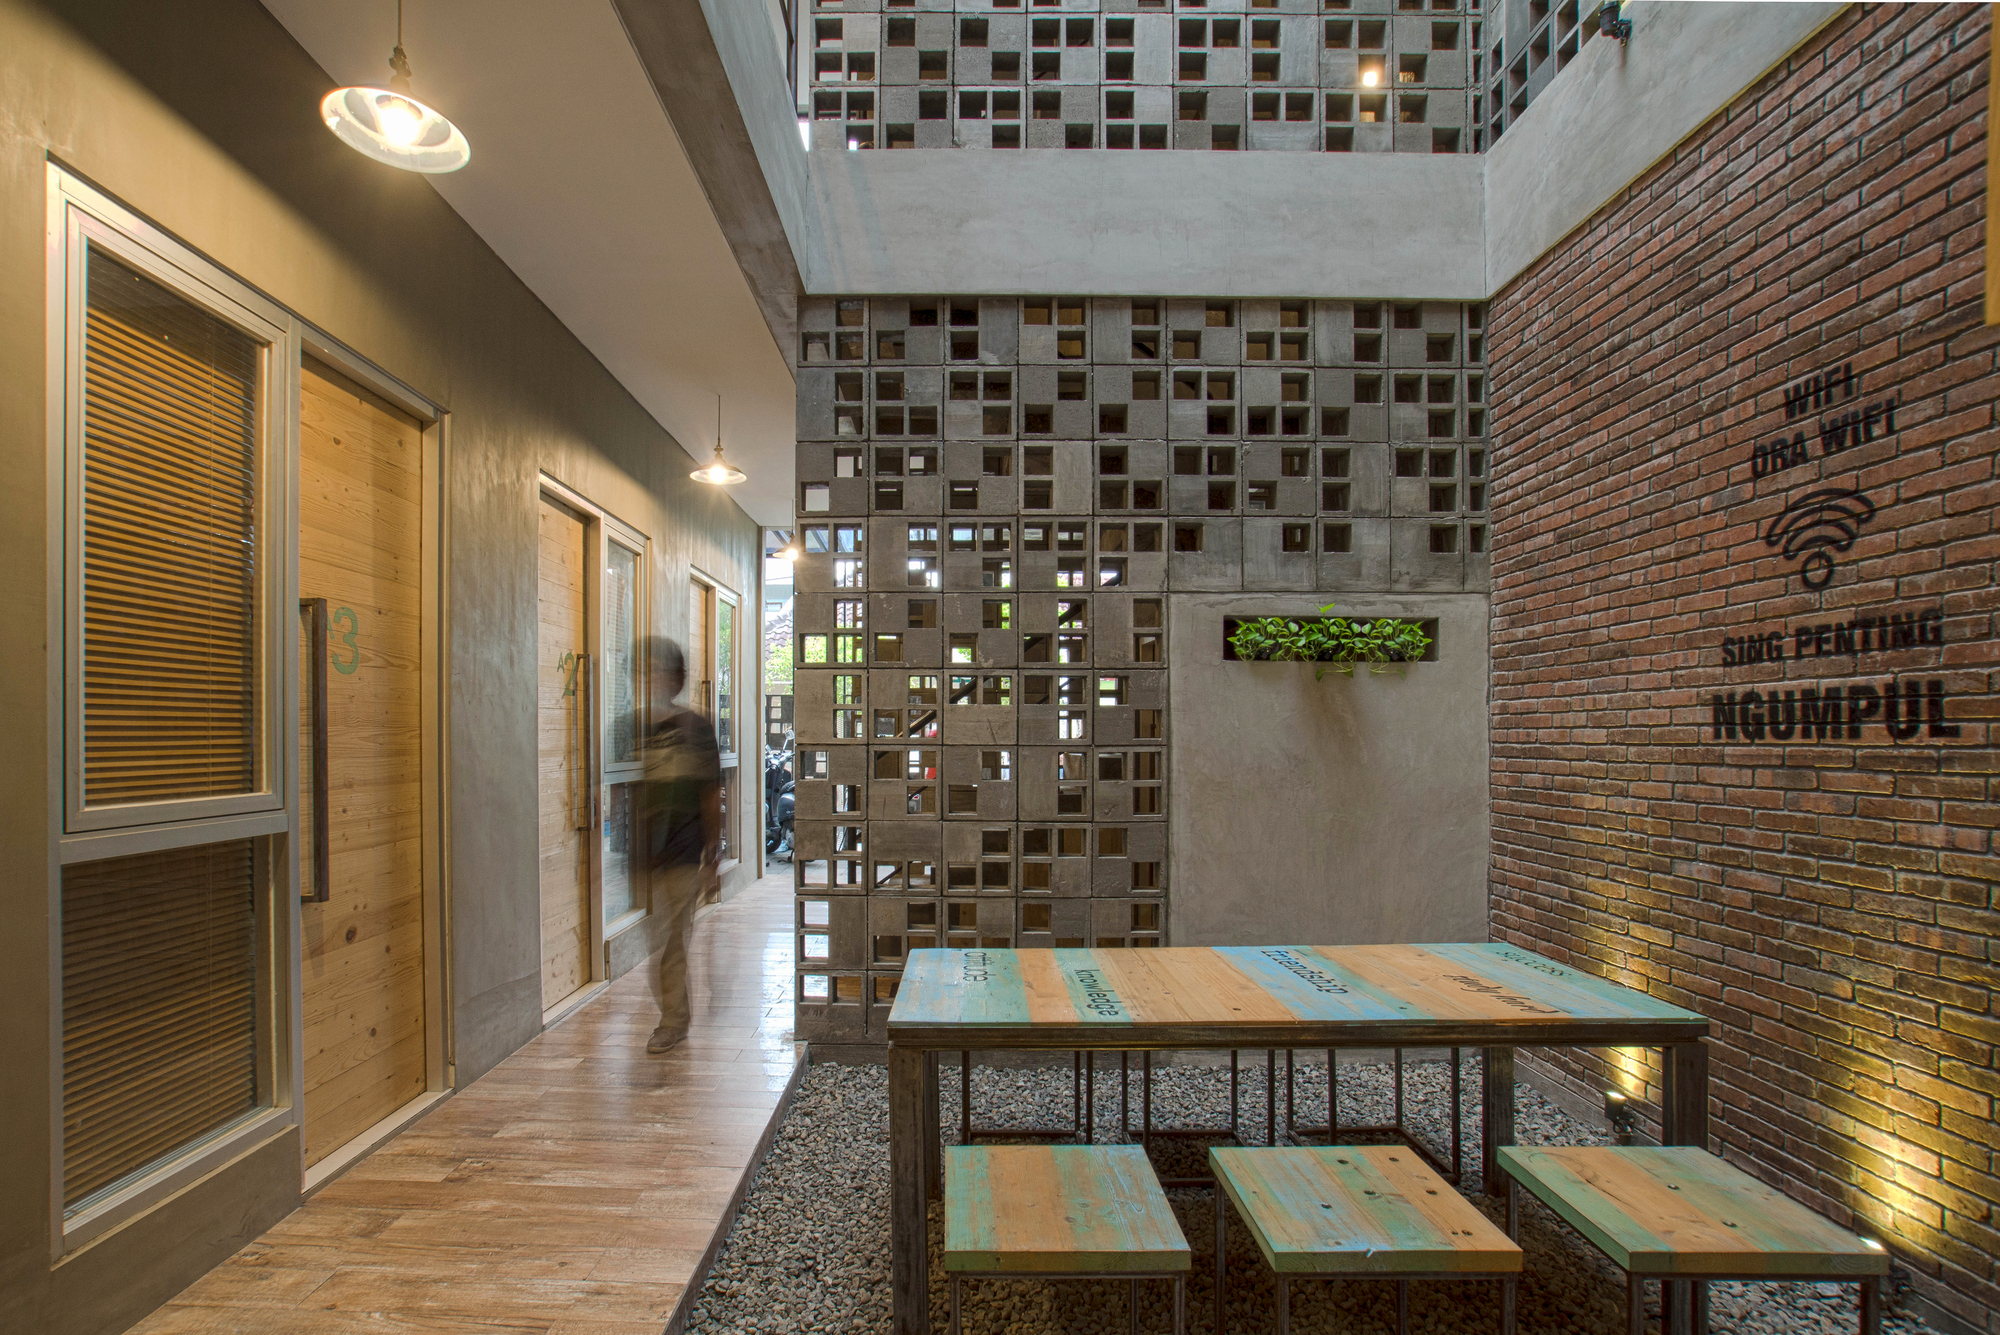 Partisi Interior Bioclimatic And Biophilic Boarding House / Andyrahman